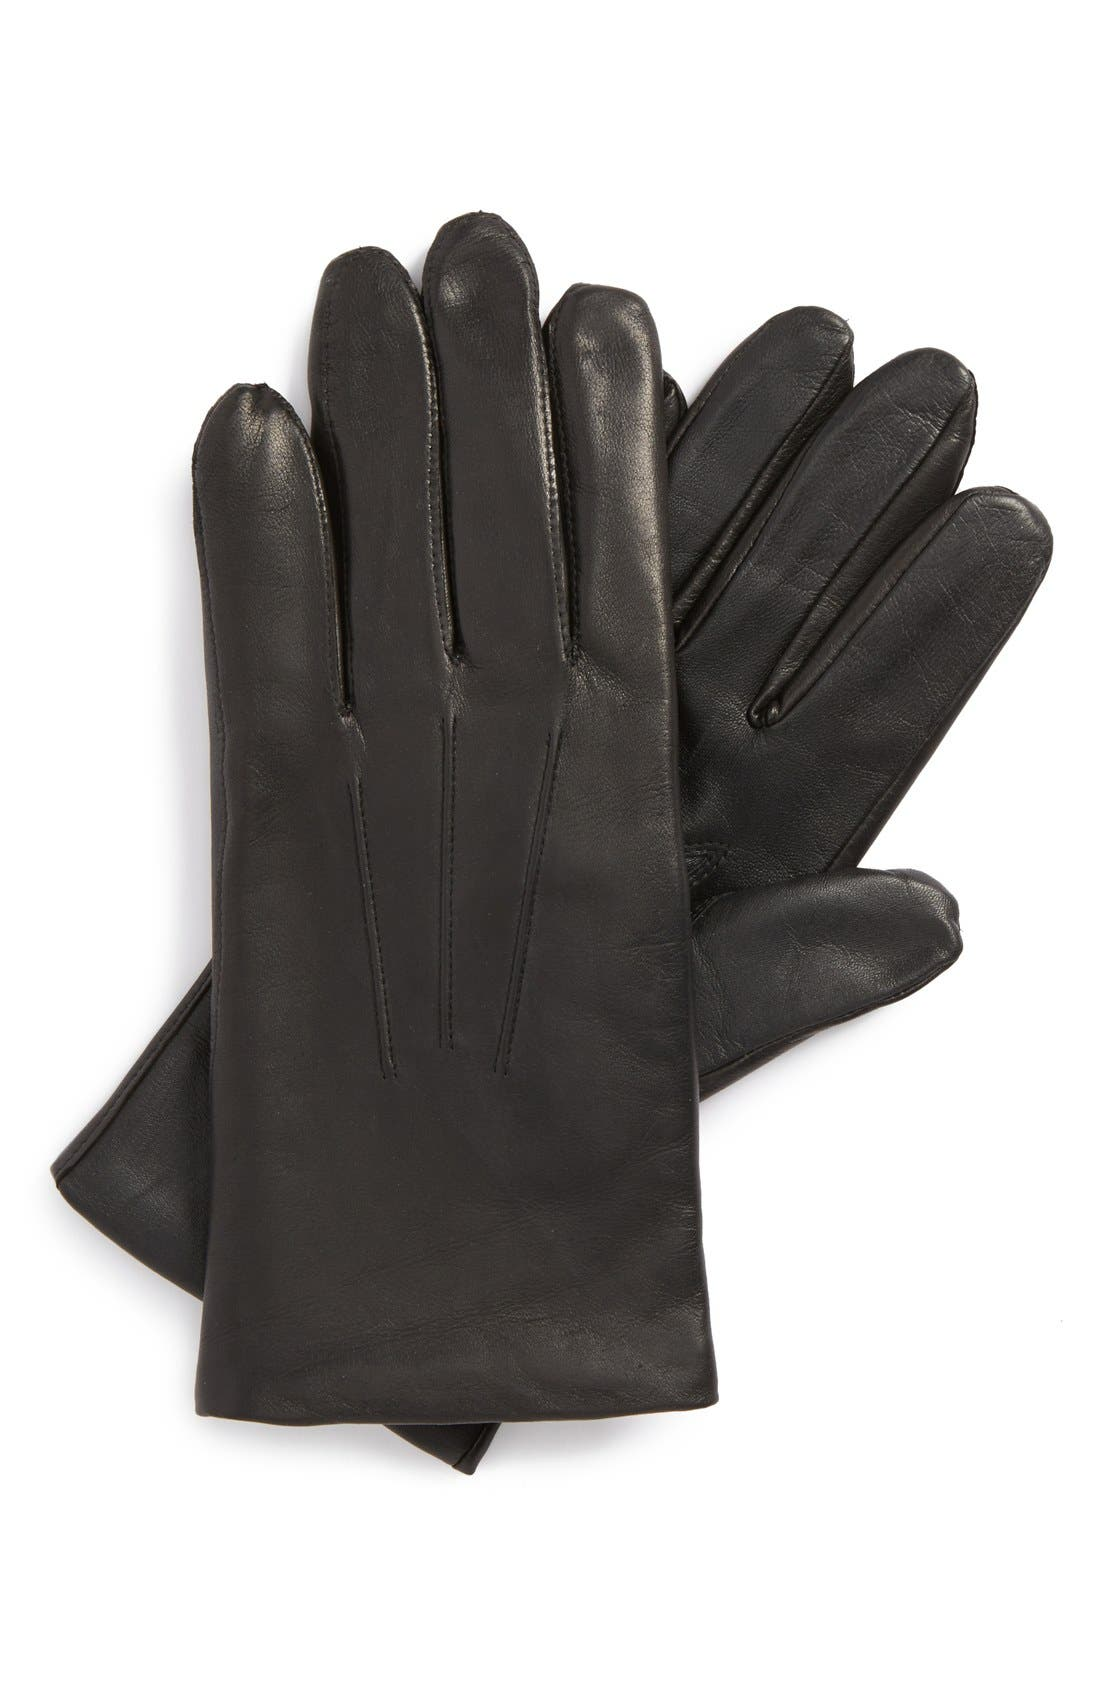 Leather Tech Gloves,                         Main,                         color,